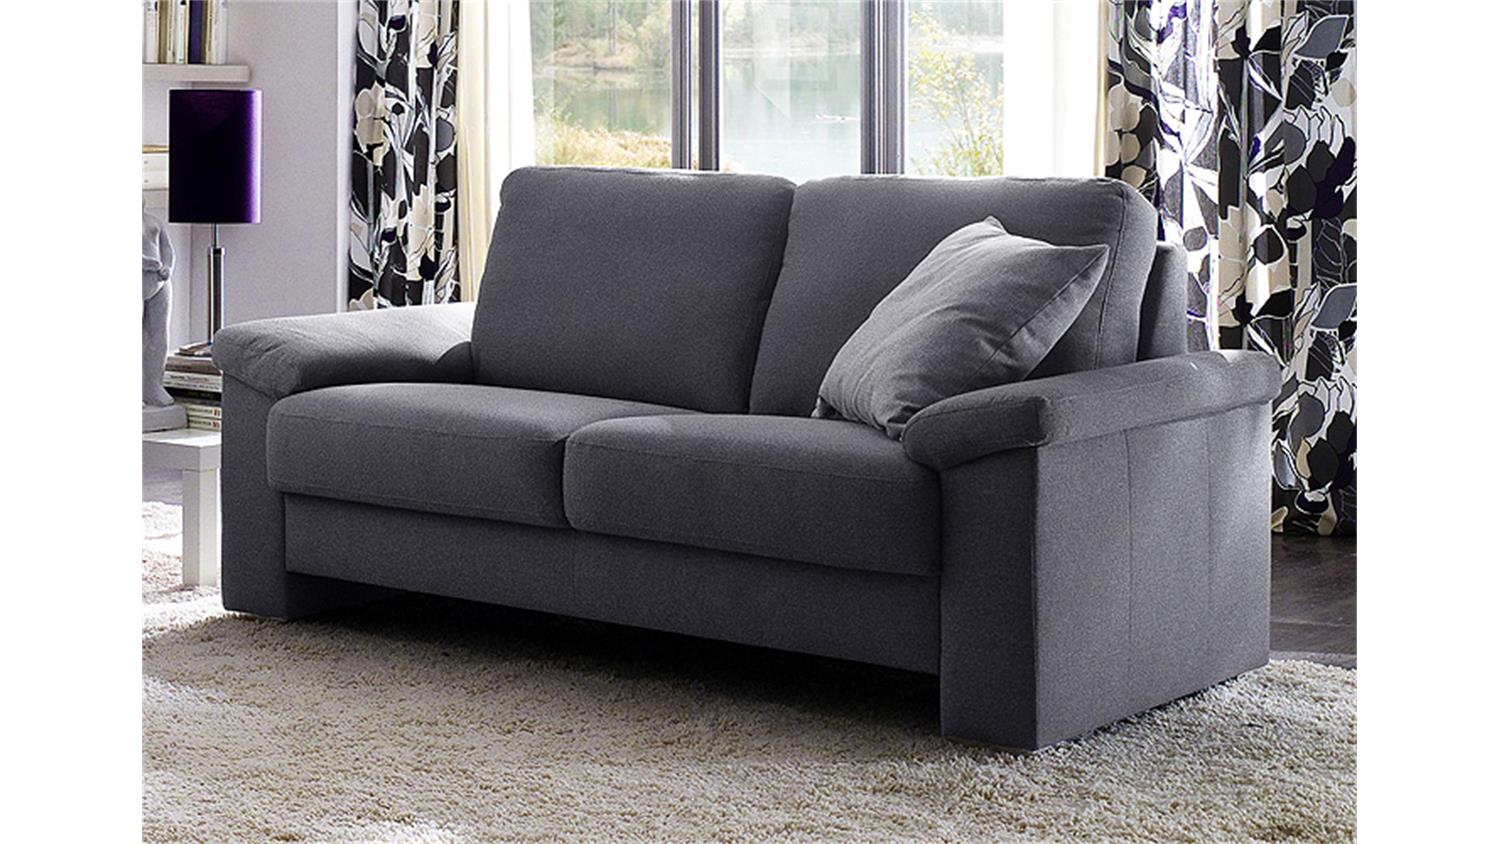 sofa mobile 2 sitzer stoff dunkelgrau breite 182 cm. Black Bedroom Furniture Sets. Home Design Ideas